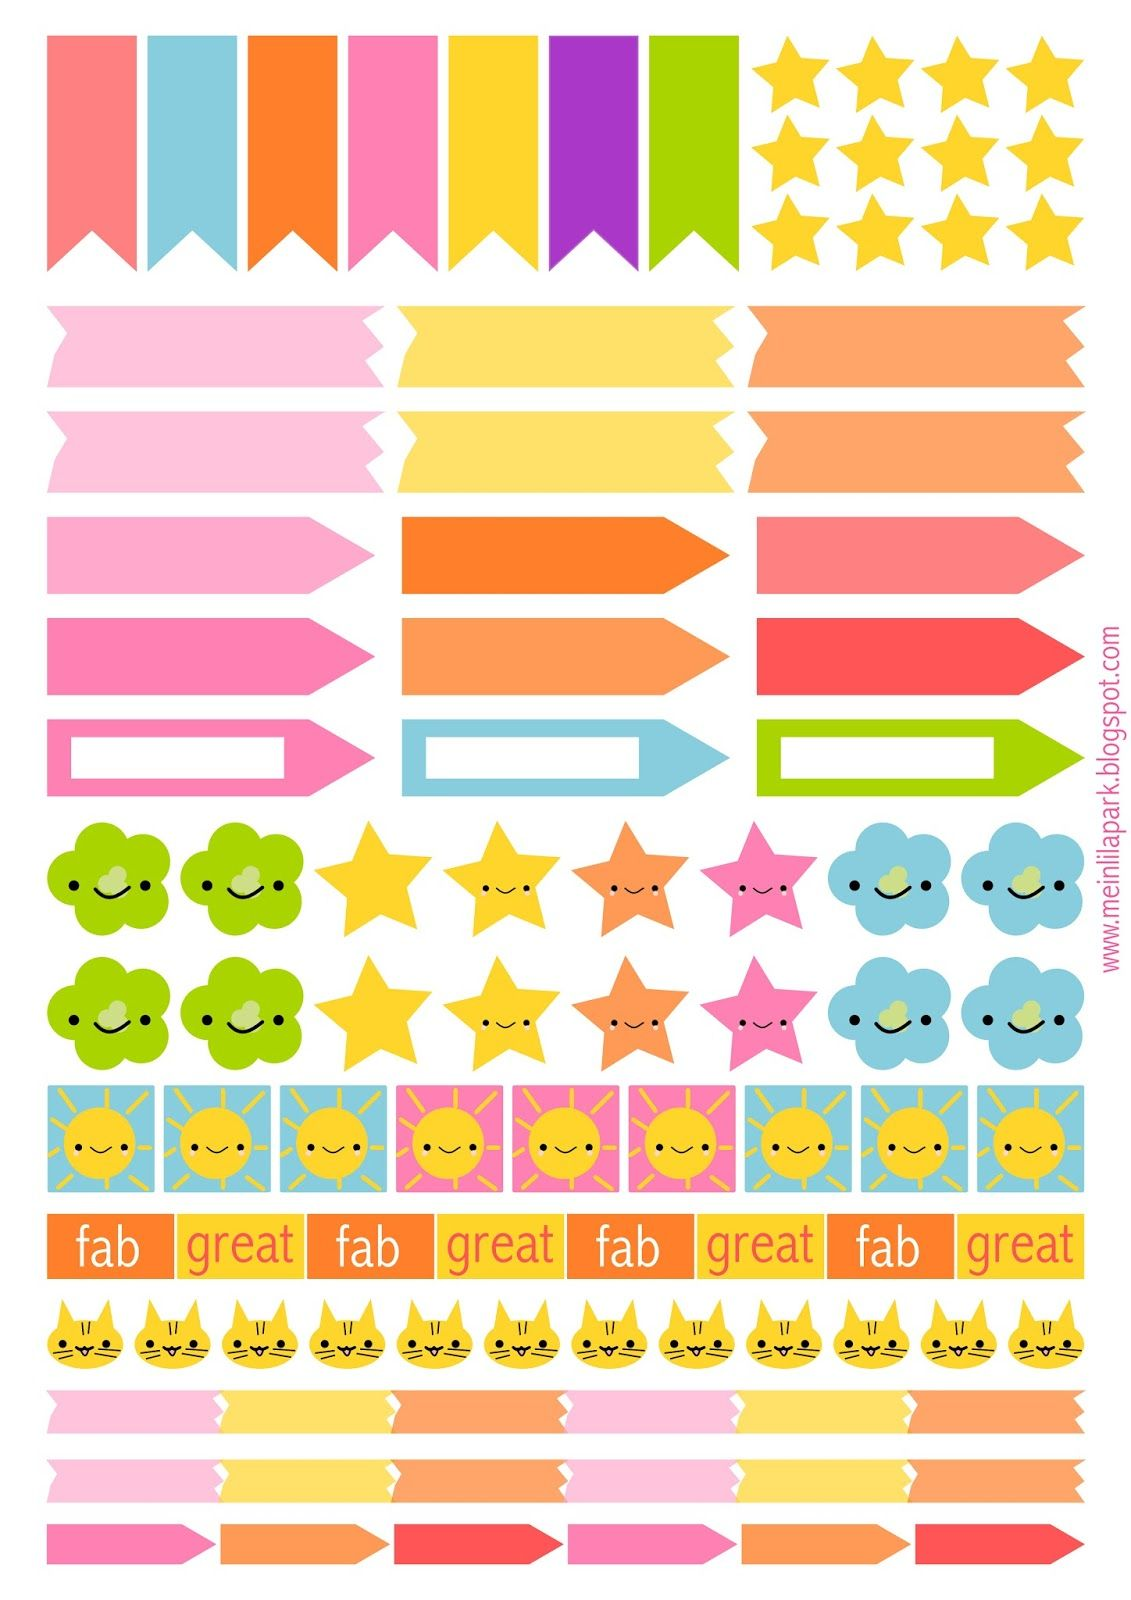 free printable planner flags and stickers - ausdruckbare agenda